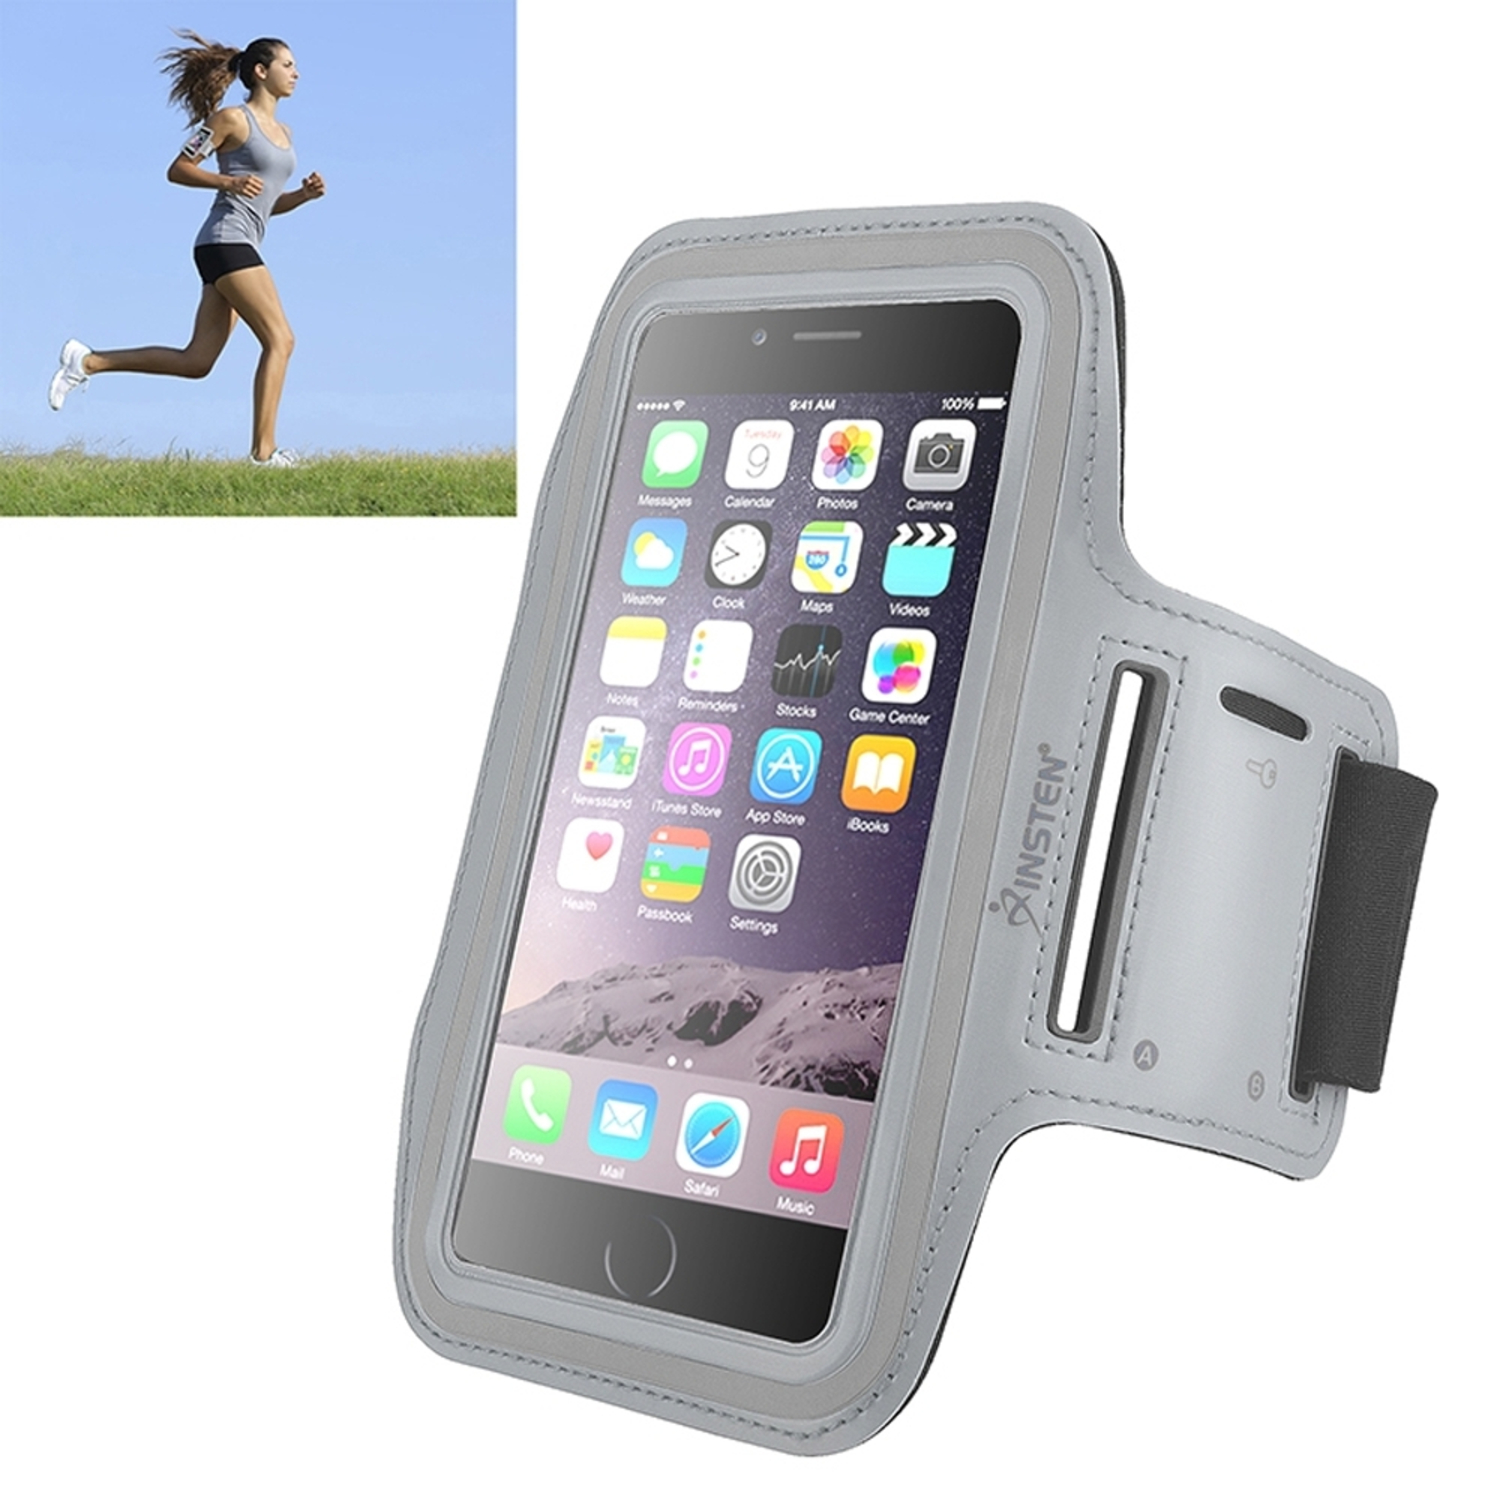 Insten Silver Sports Running Workout Exercise Gym Armband Case For iPhone 6 Plus 6S Plus / Samsung Galaxy Note 5 4 3 S7 Edge Phone (with key Holder Storage Slot)